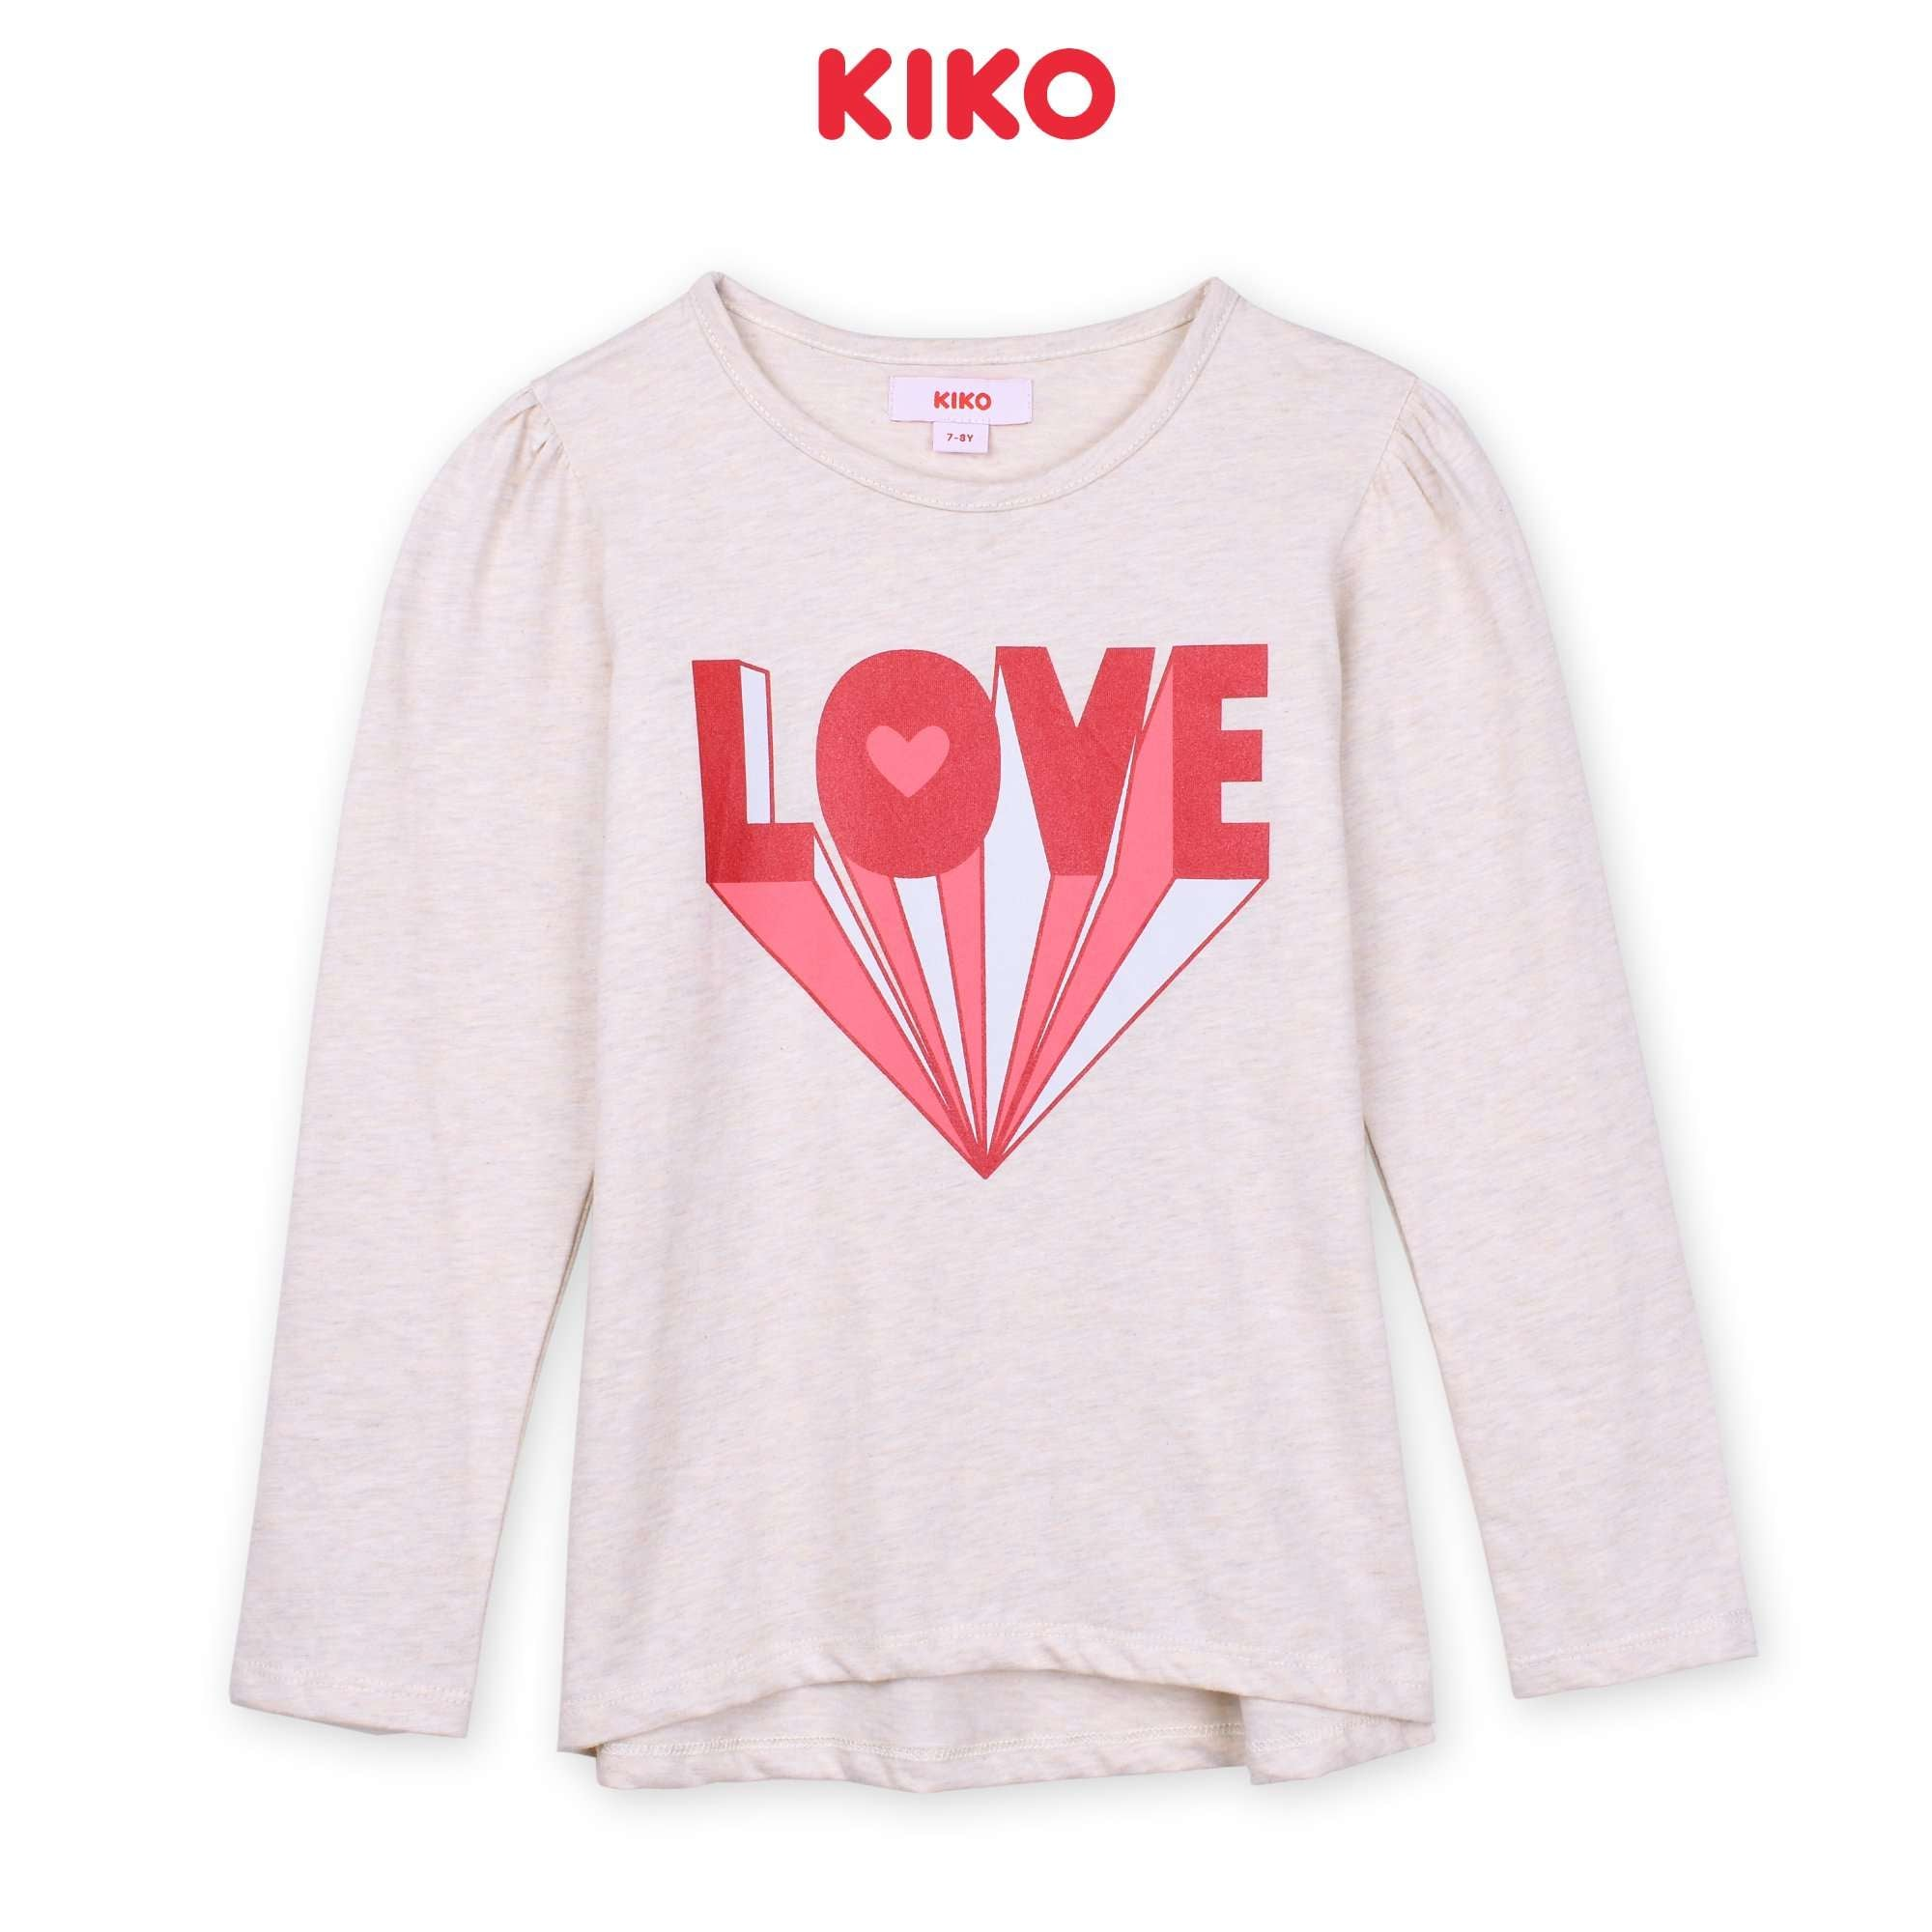 KIKO Girl Long Sleeve Tee - Light Pink K926103-1383-P5 : Buy KIKO online at CMG.MY